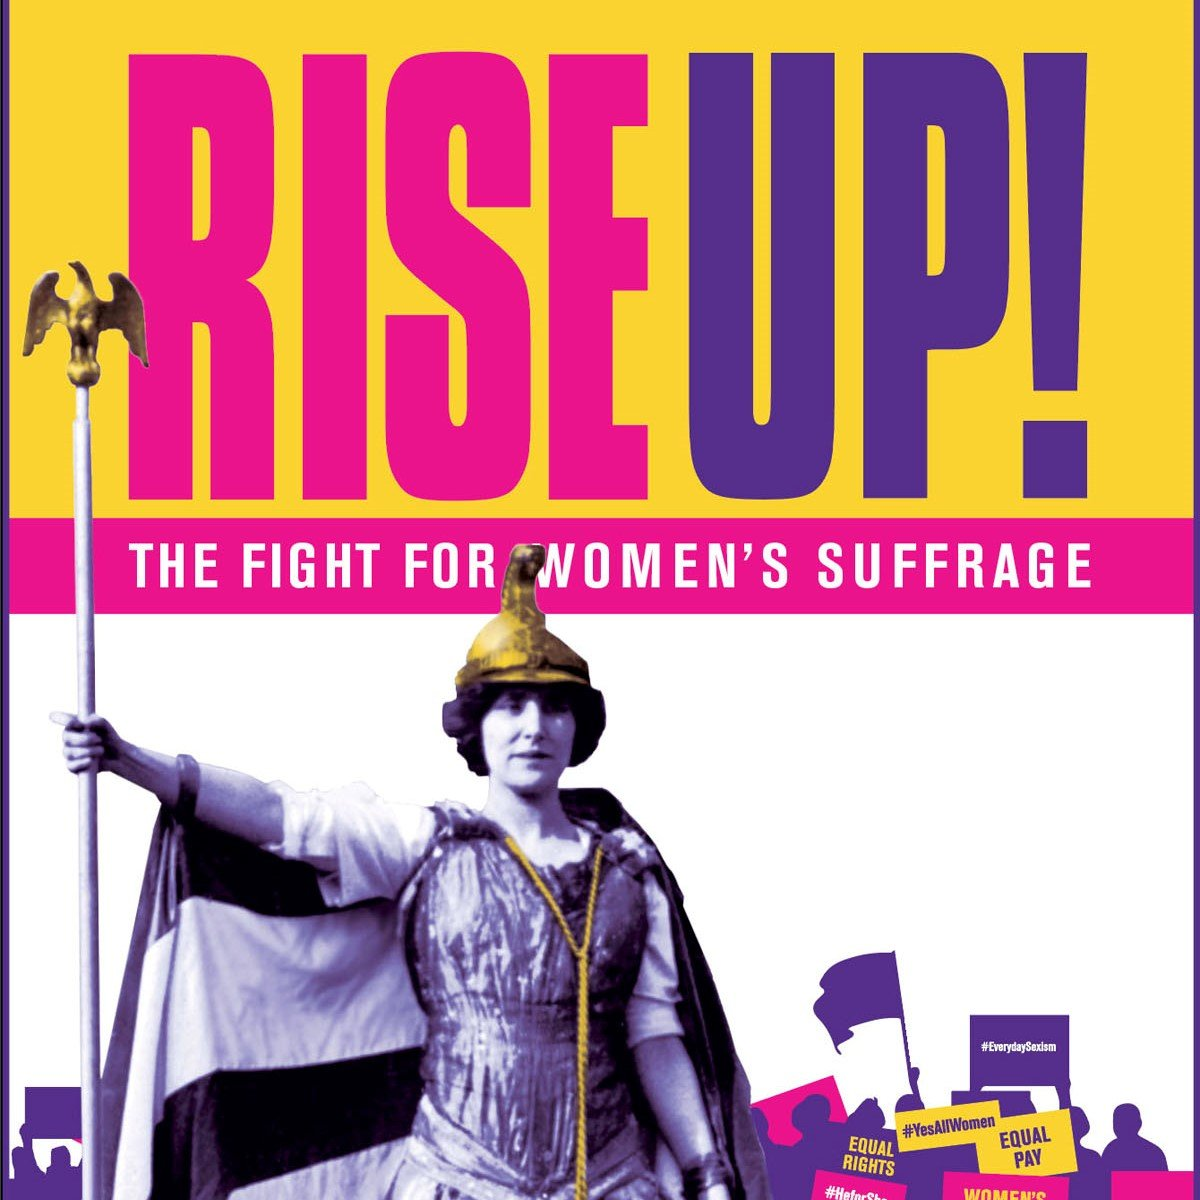 Rise Up! The Fight For Women's Suffrage Aug 20, 2020 - Jan 31, 2021